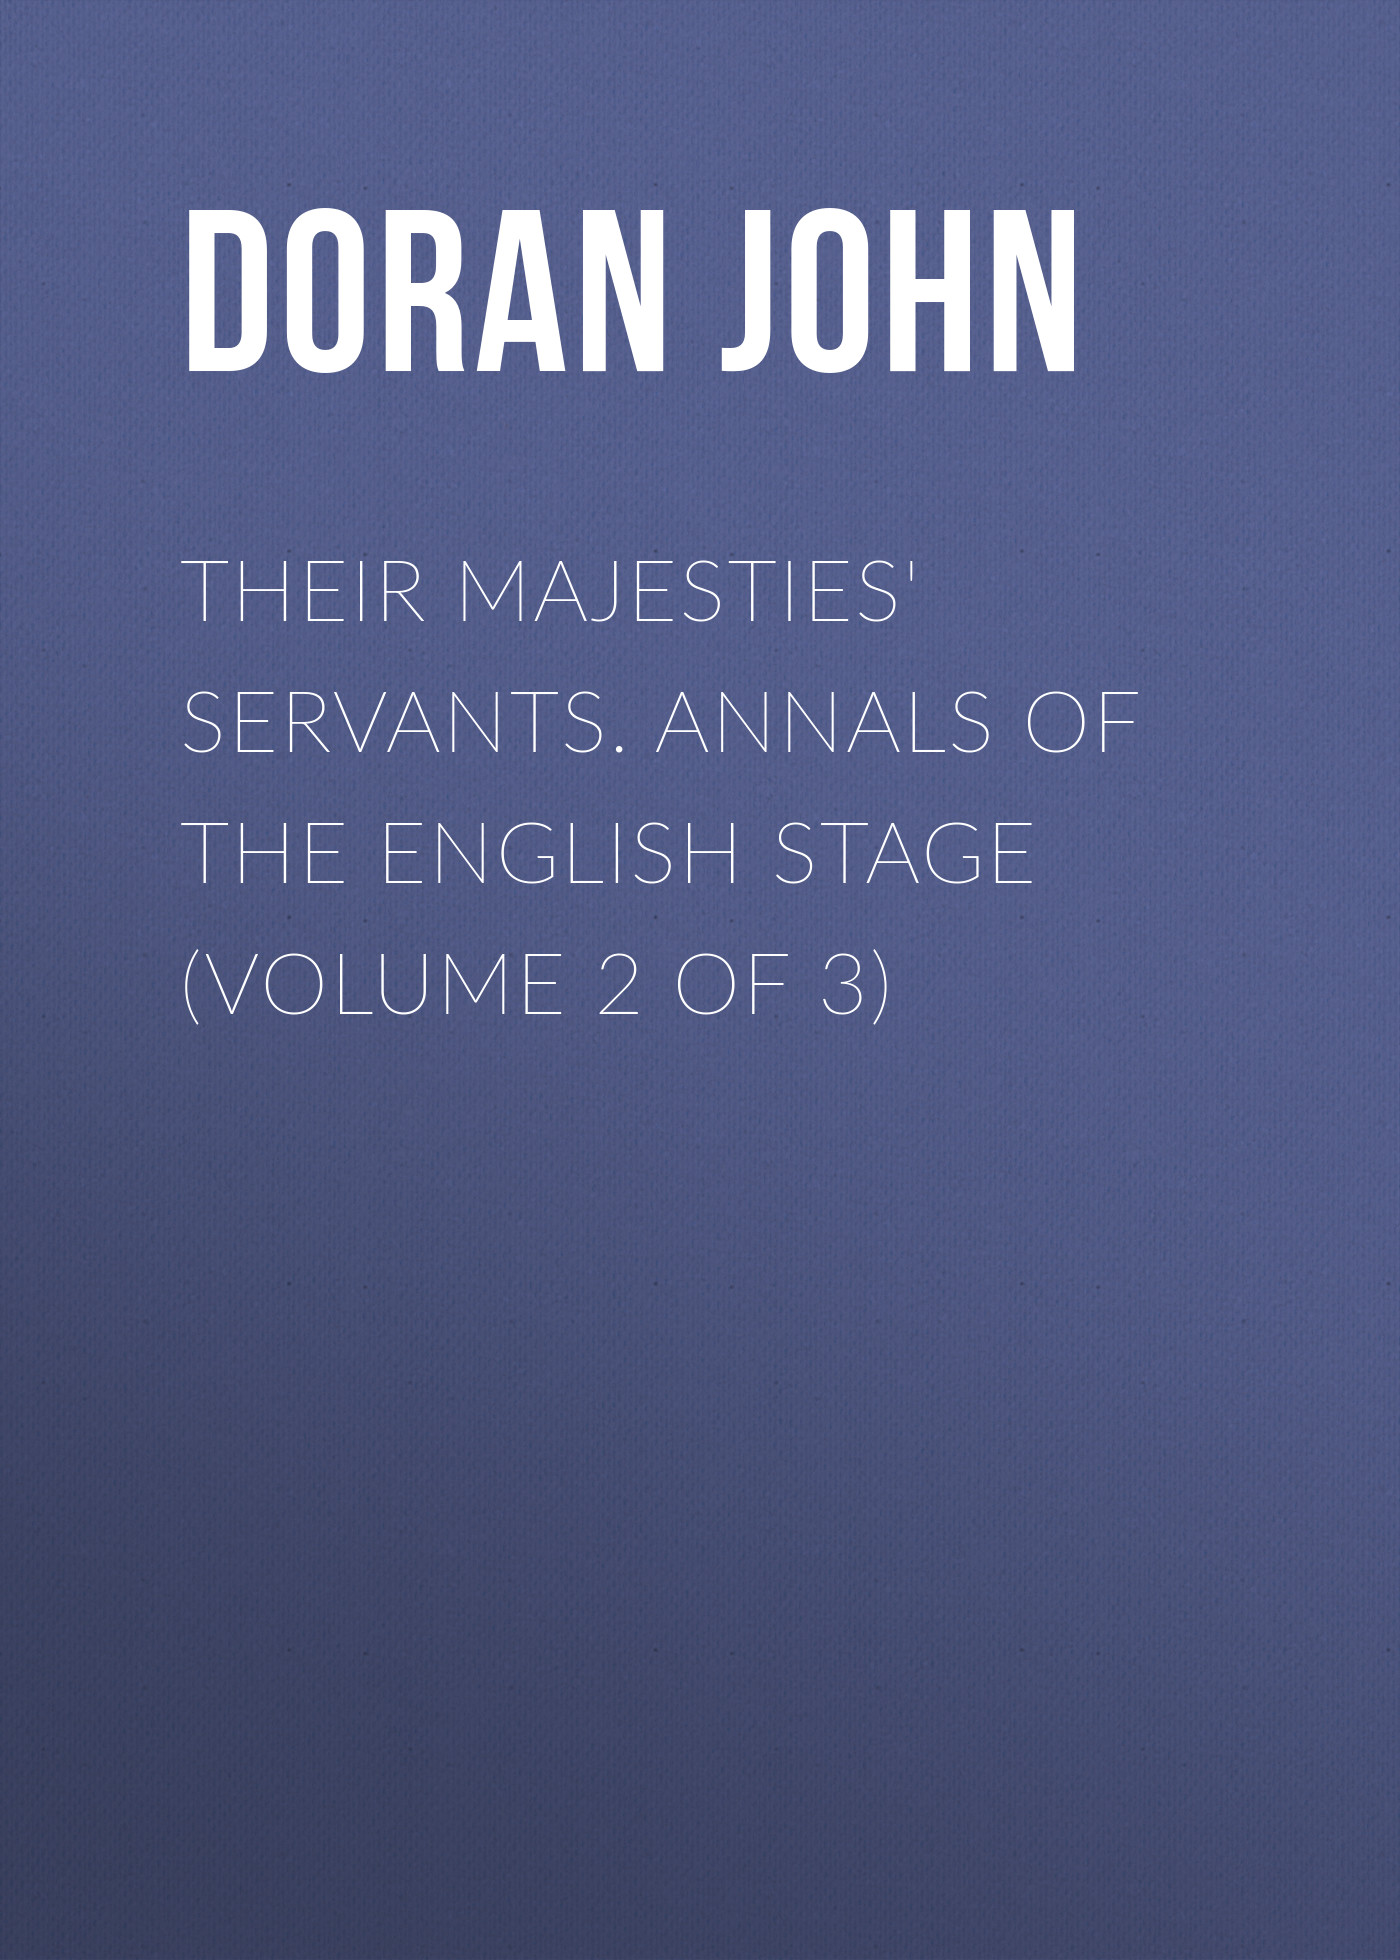 Doran John Their Majesties' Servants. Annals of the English Stage (Volume 2 of 3) doran john their majesties servants annals of the english stage volume 2 of 3